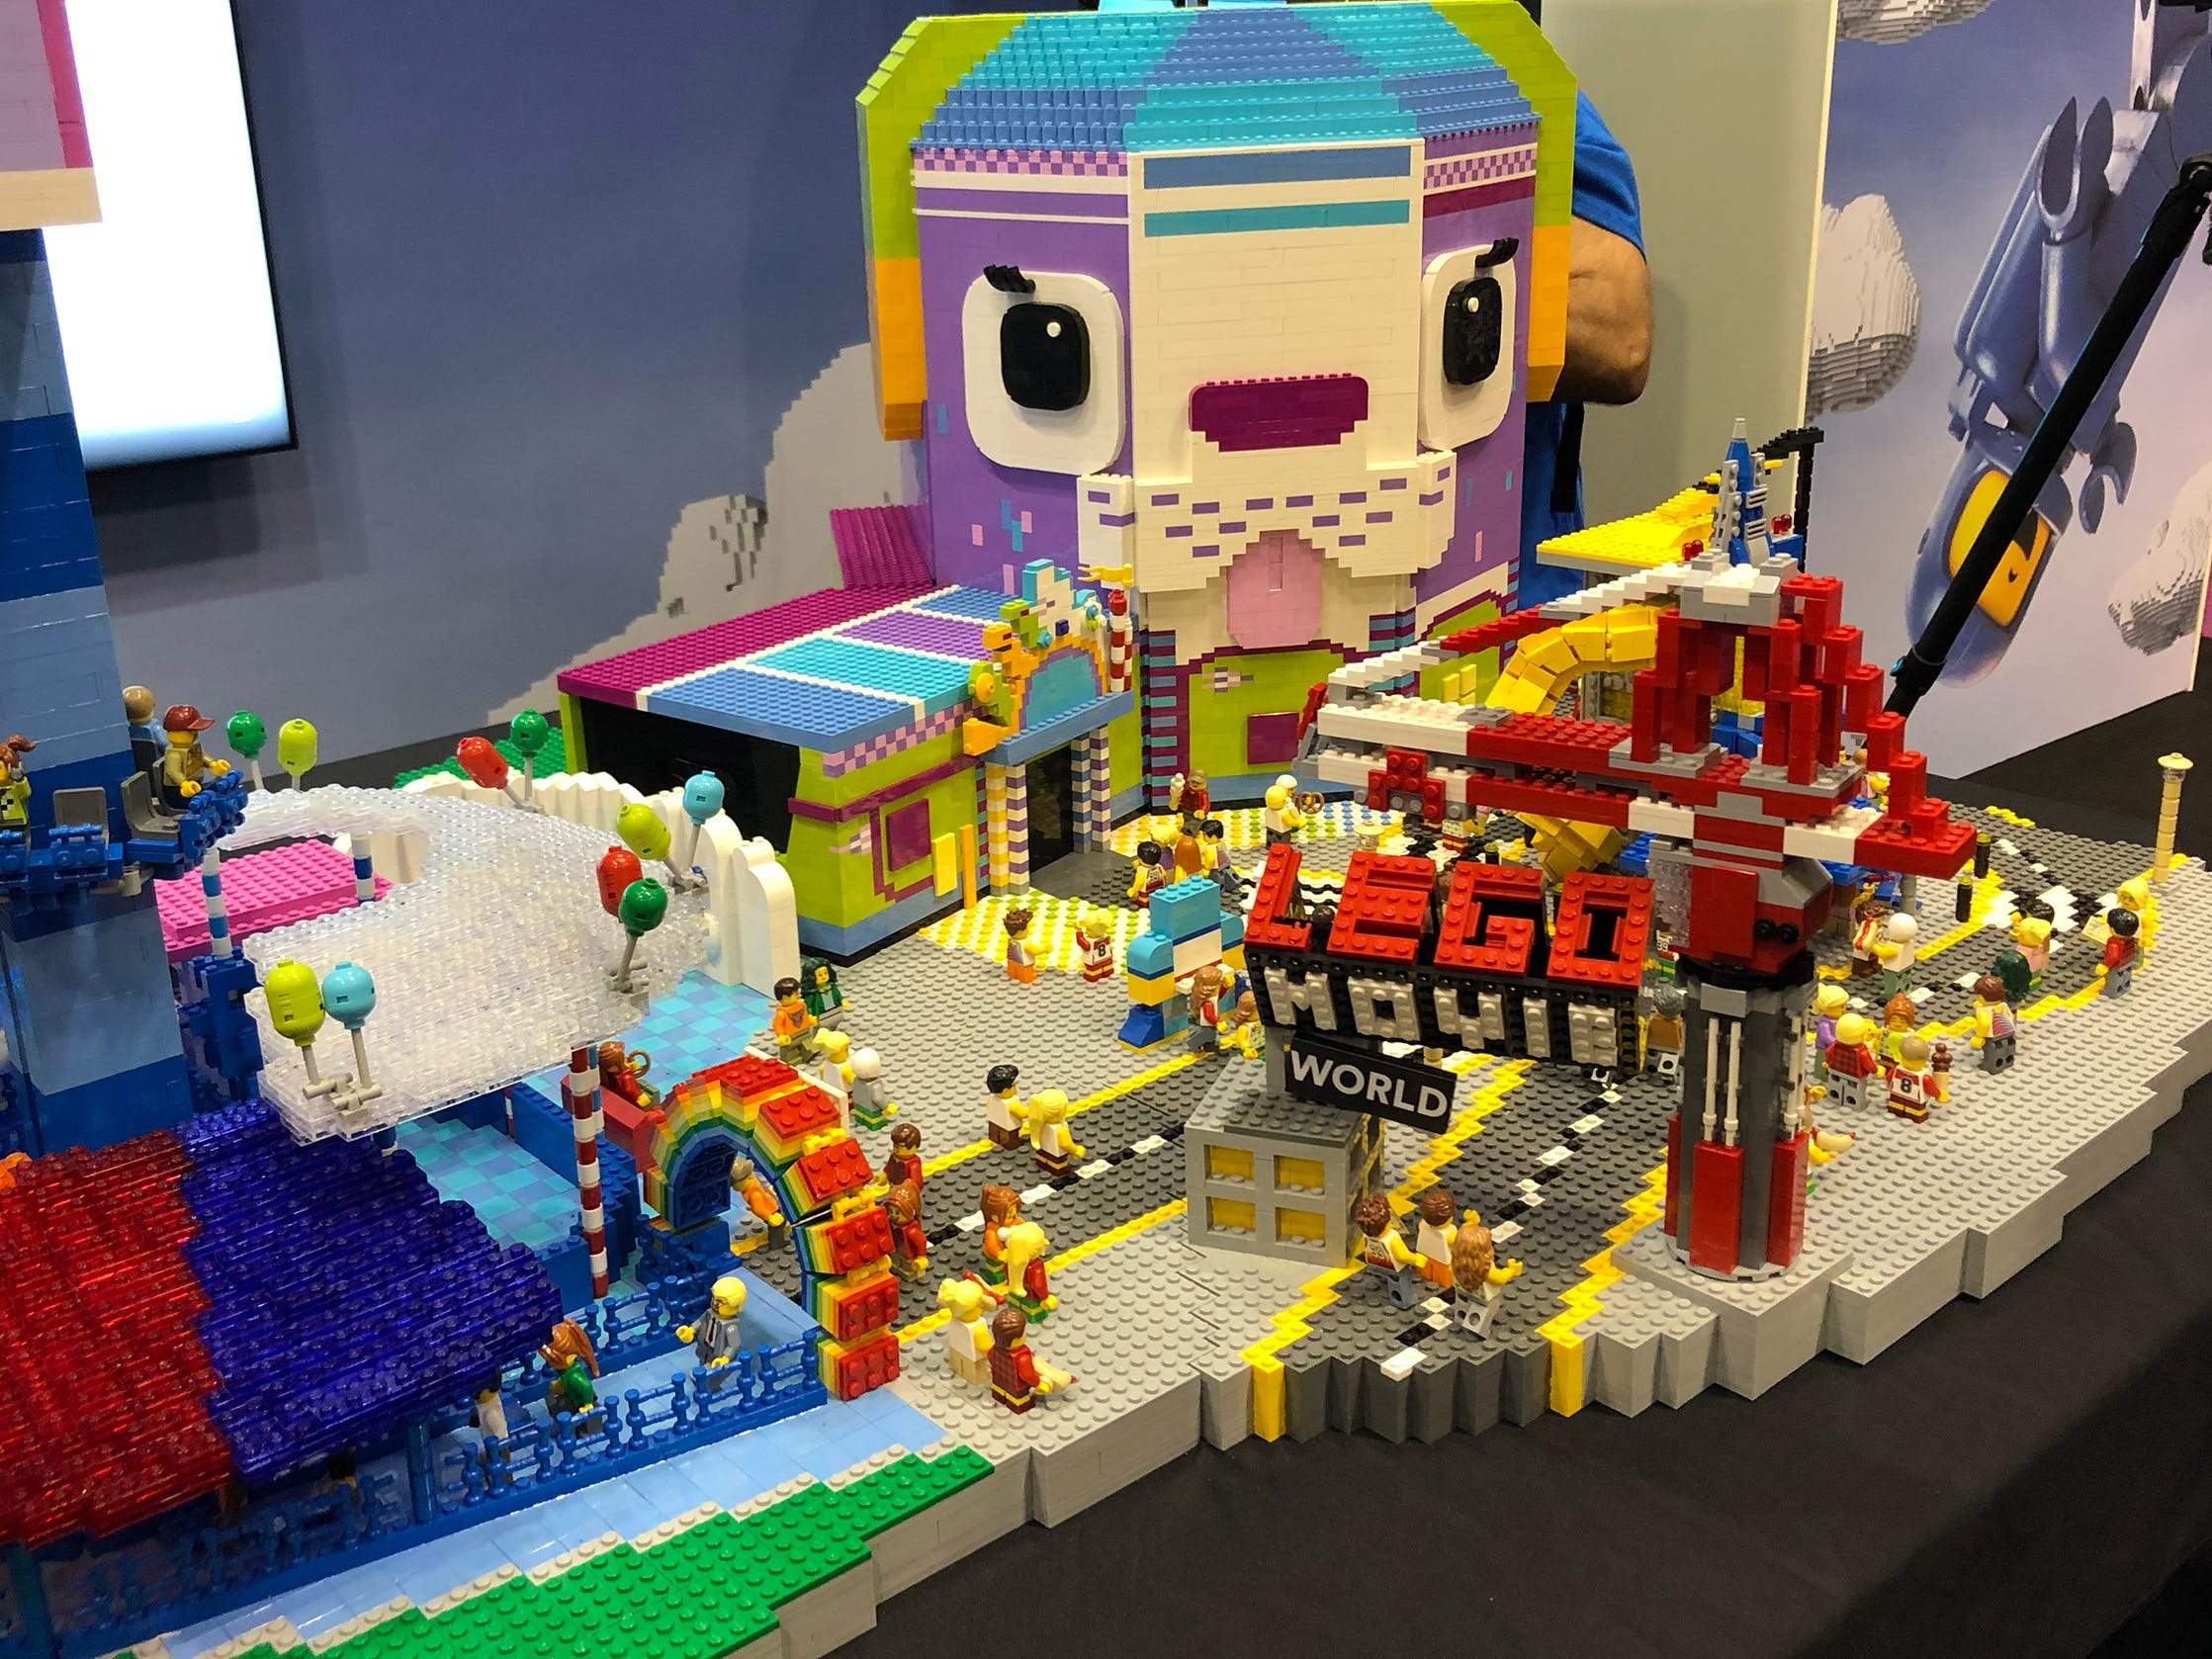 Legoland Florida will be taking visitors airborne when it opens the Lego Movie Masters of Flight ride in early spring of 2019. It will be part of a new Lego Movie World land that will bring the quirky characters from the popular and wildly funny films to life.